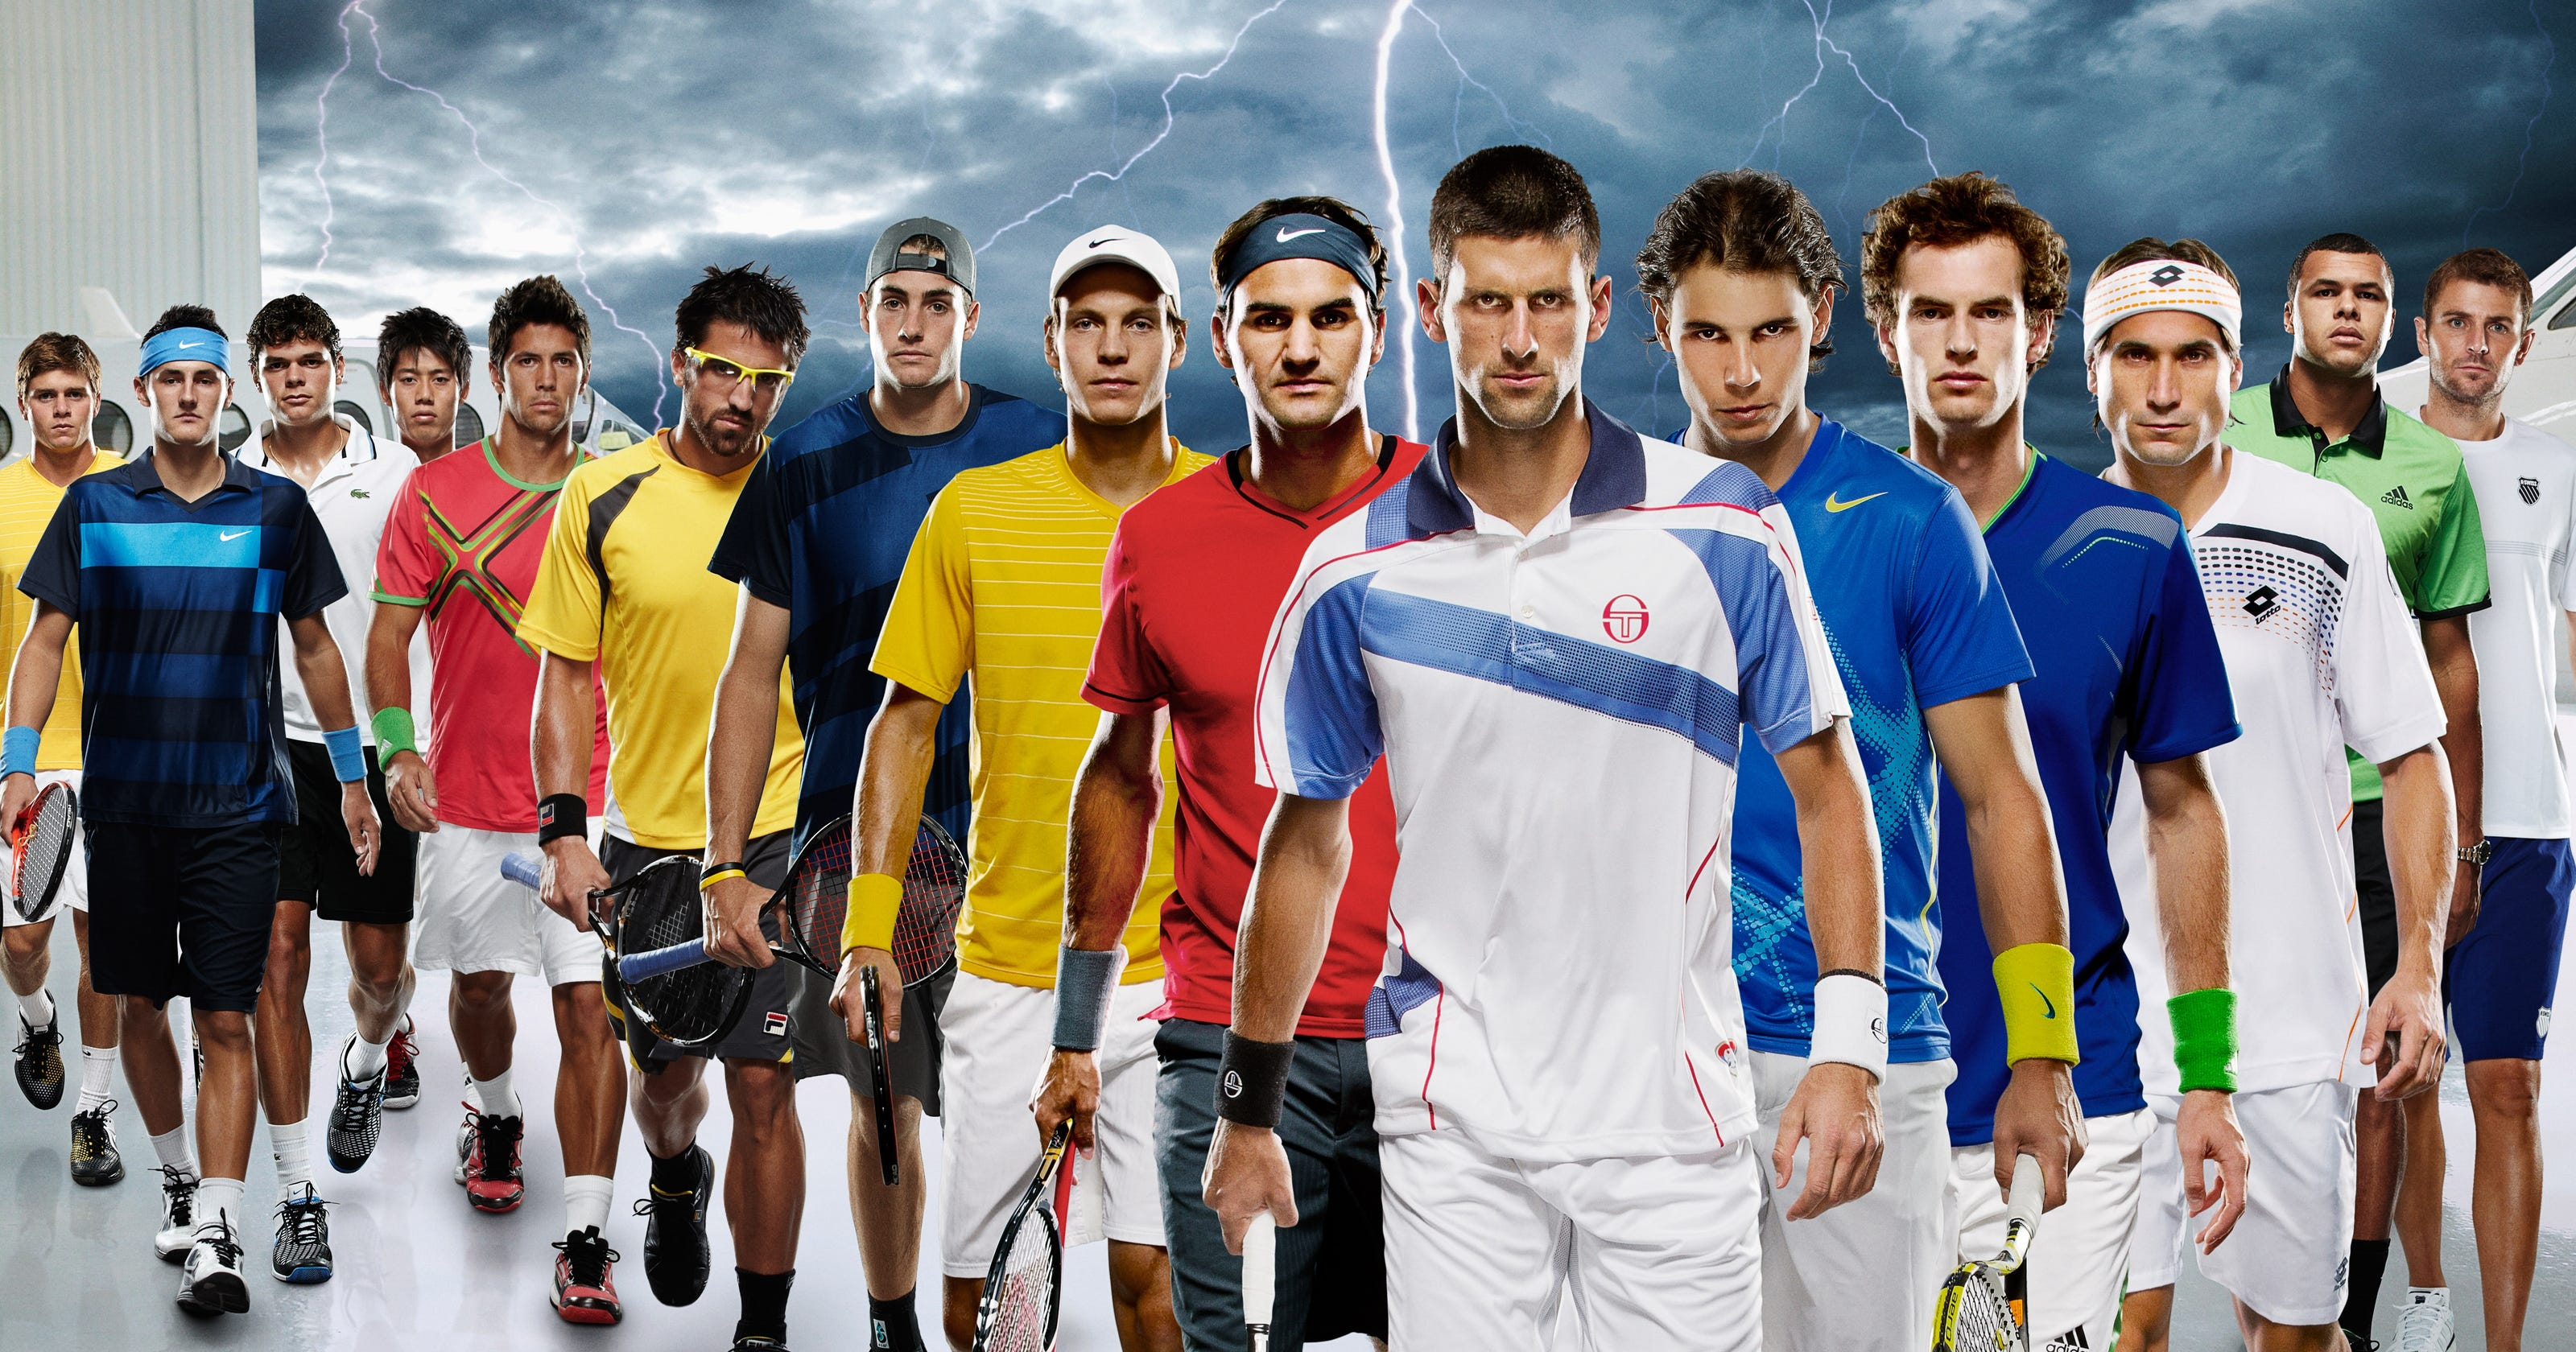 Income debate still brewing on ATP Tour